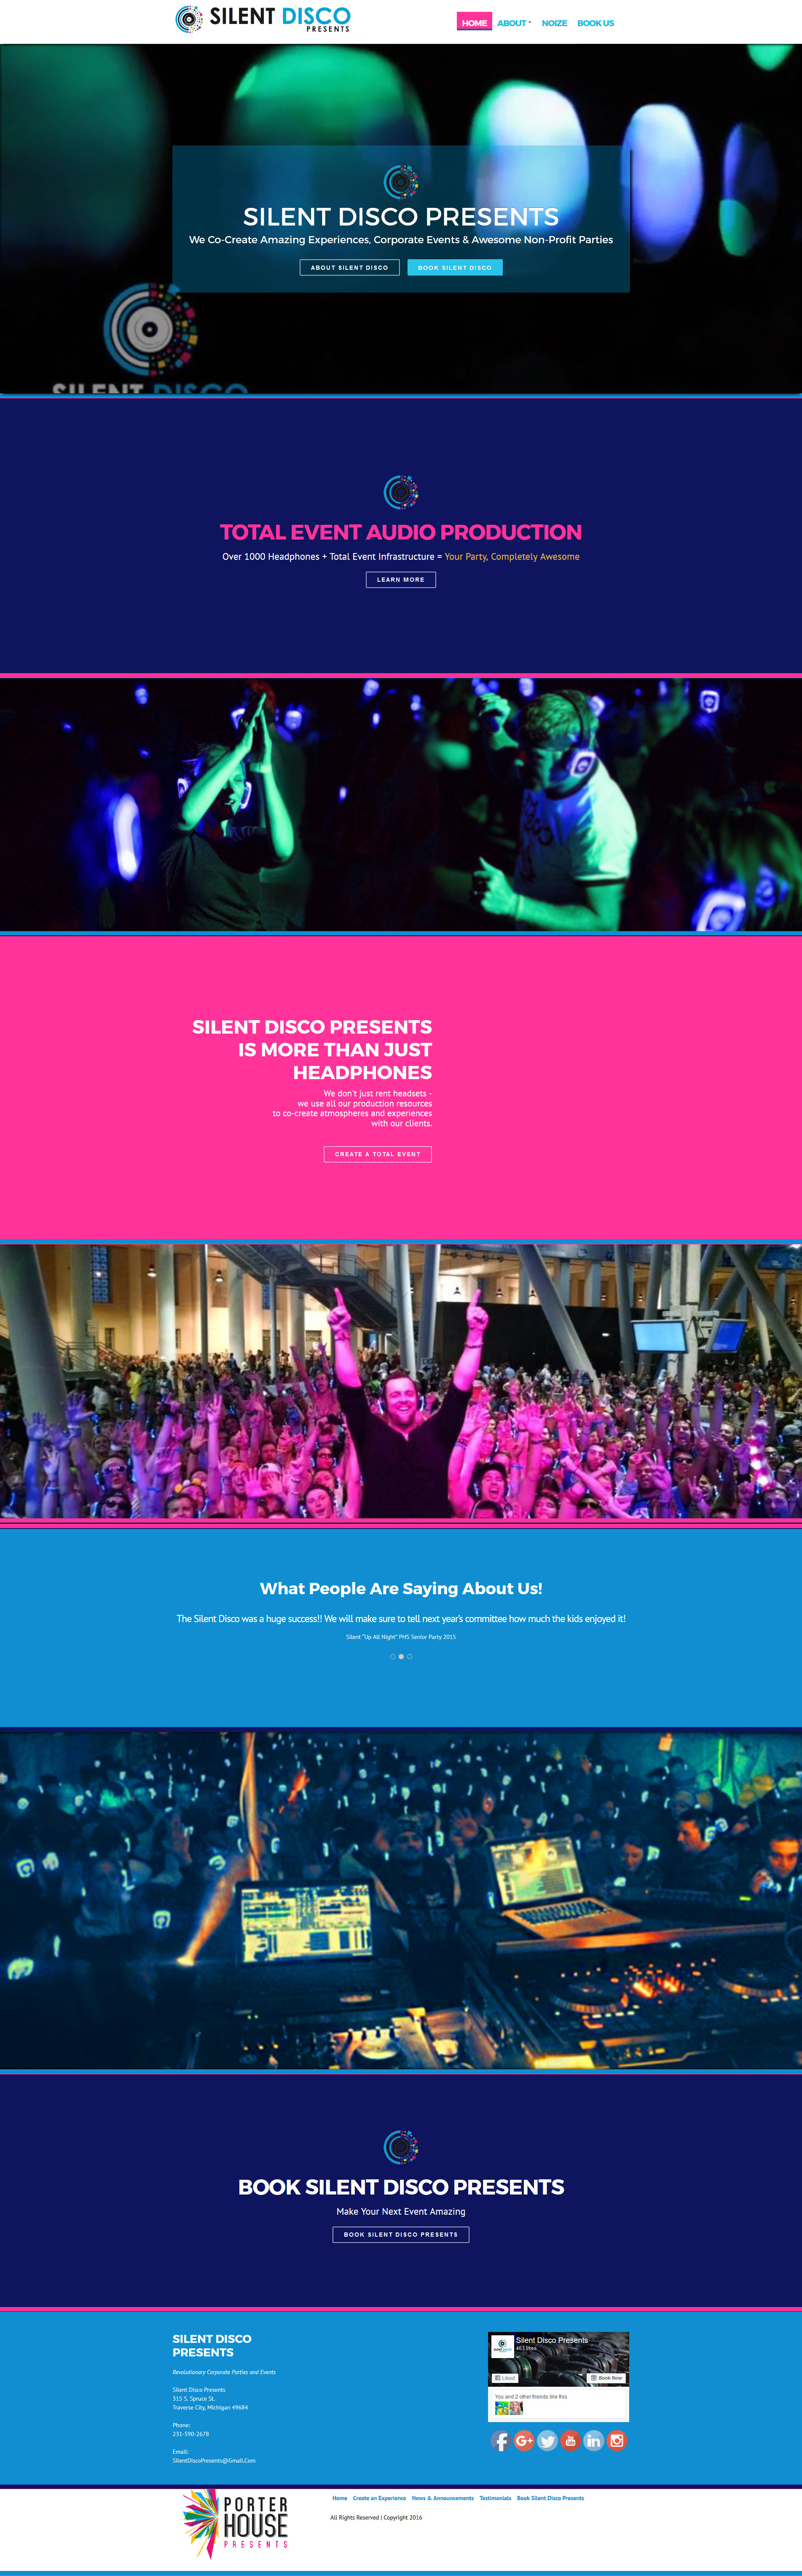 Web Design Portfolio | Silent Disco Presents